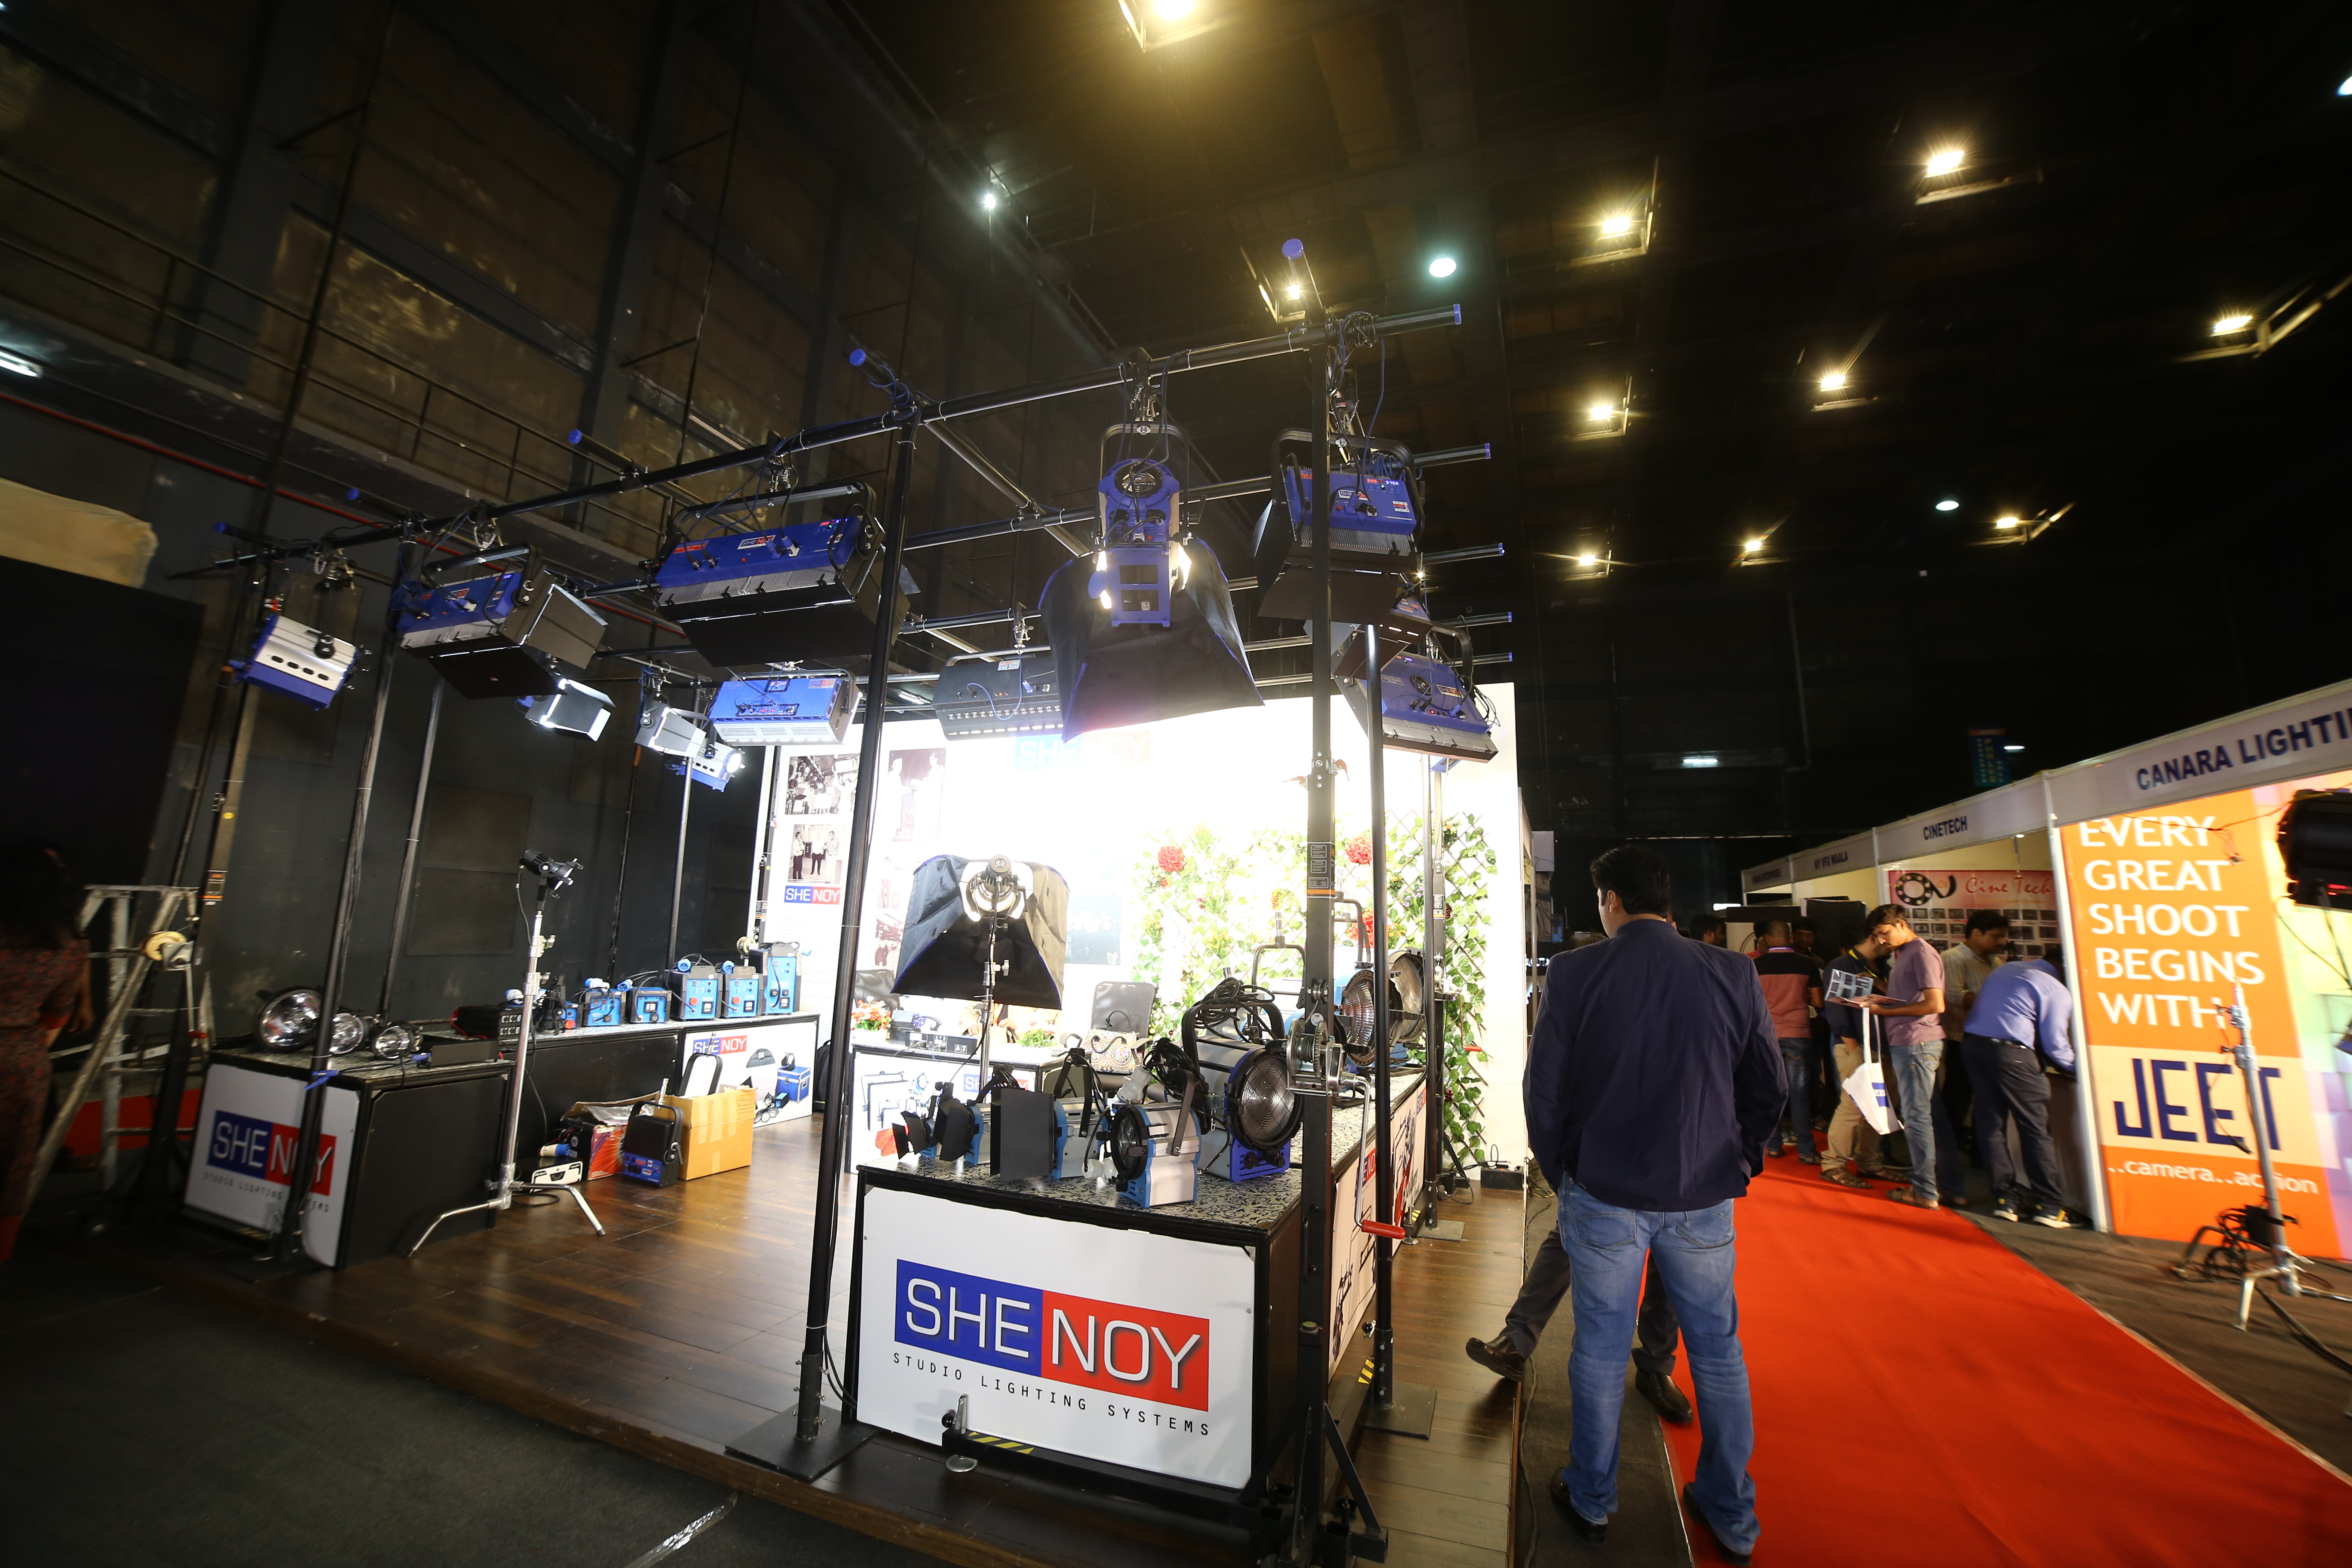 Shenoy Studio Lighting Systems